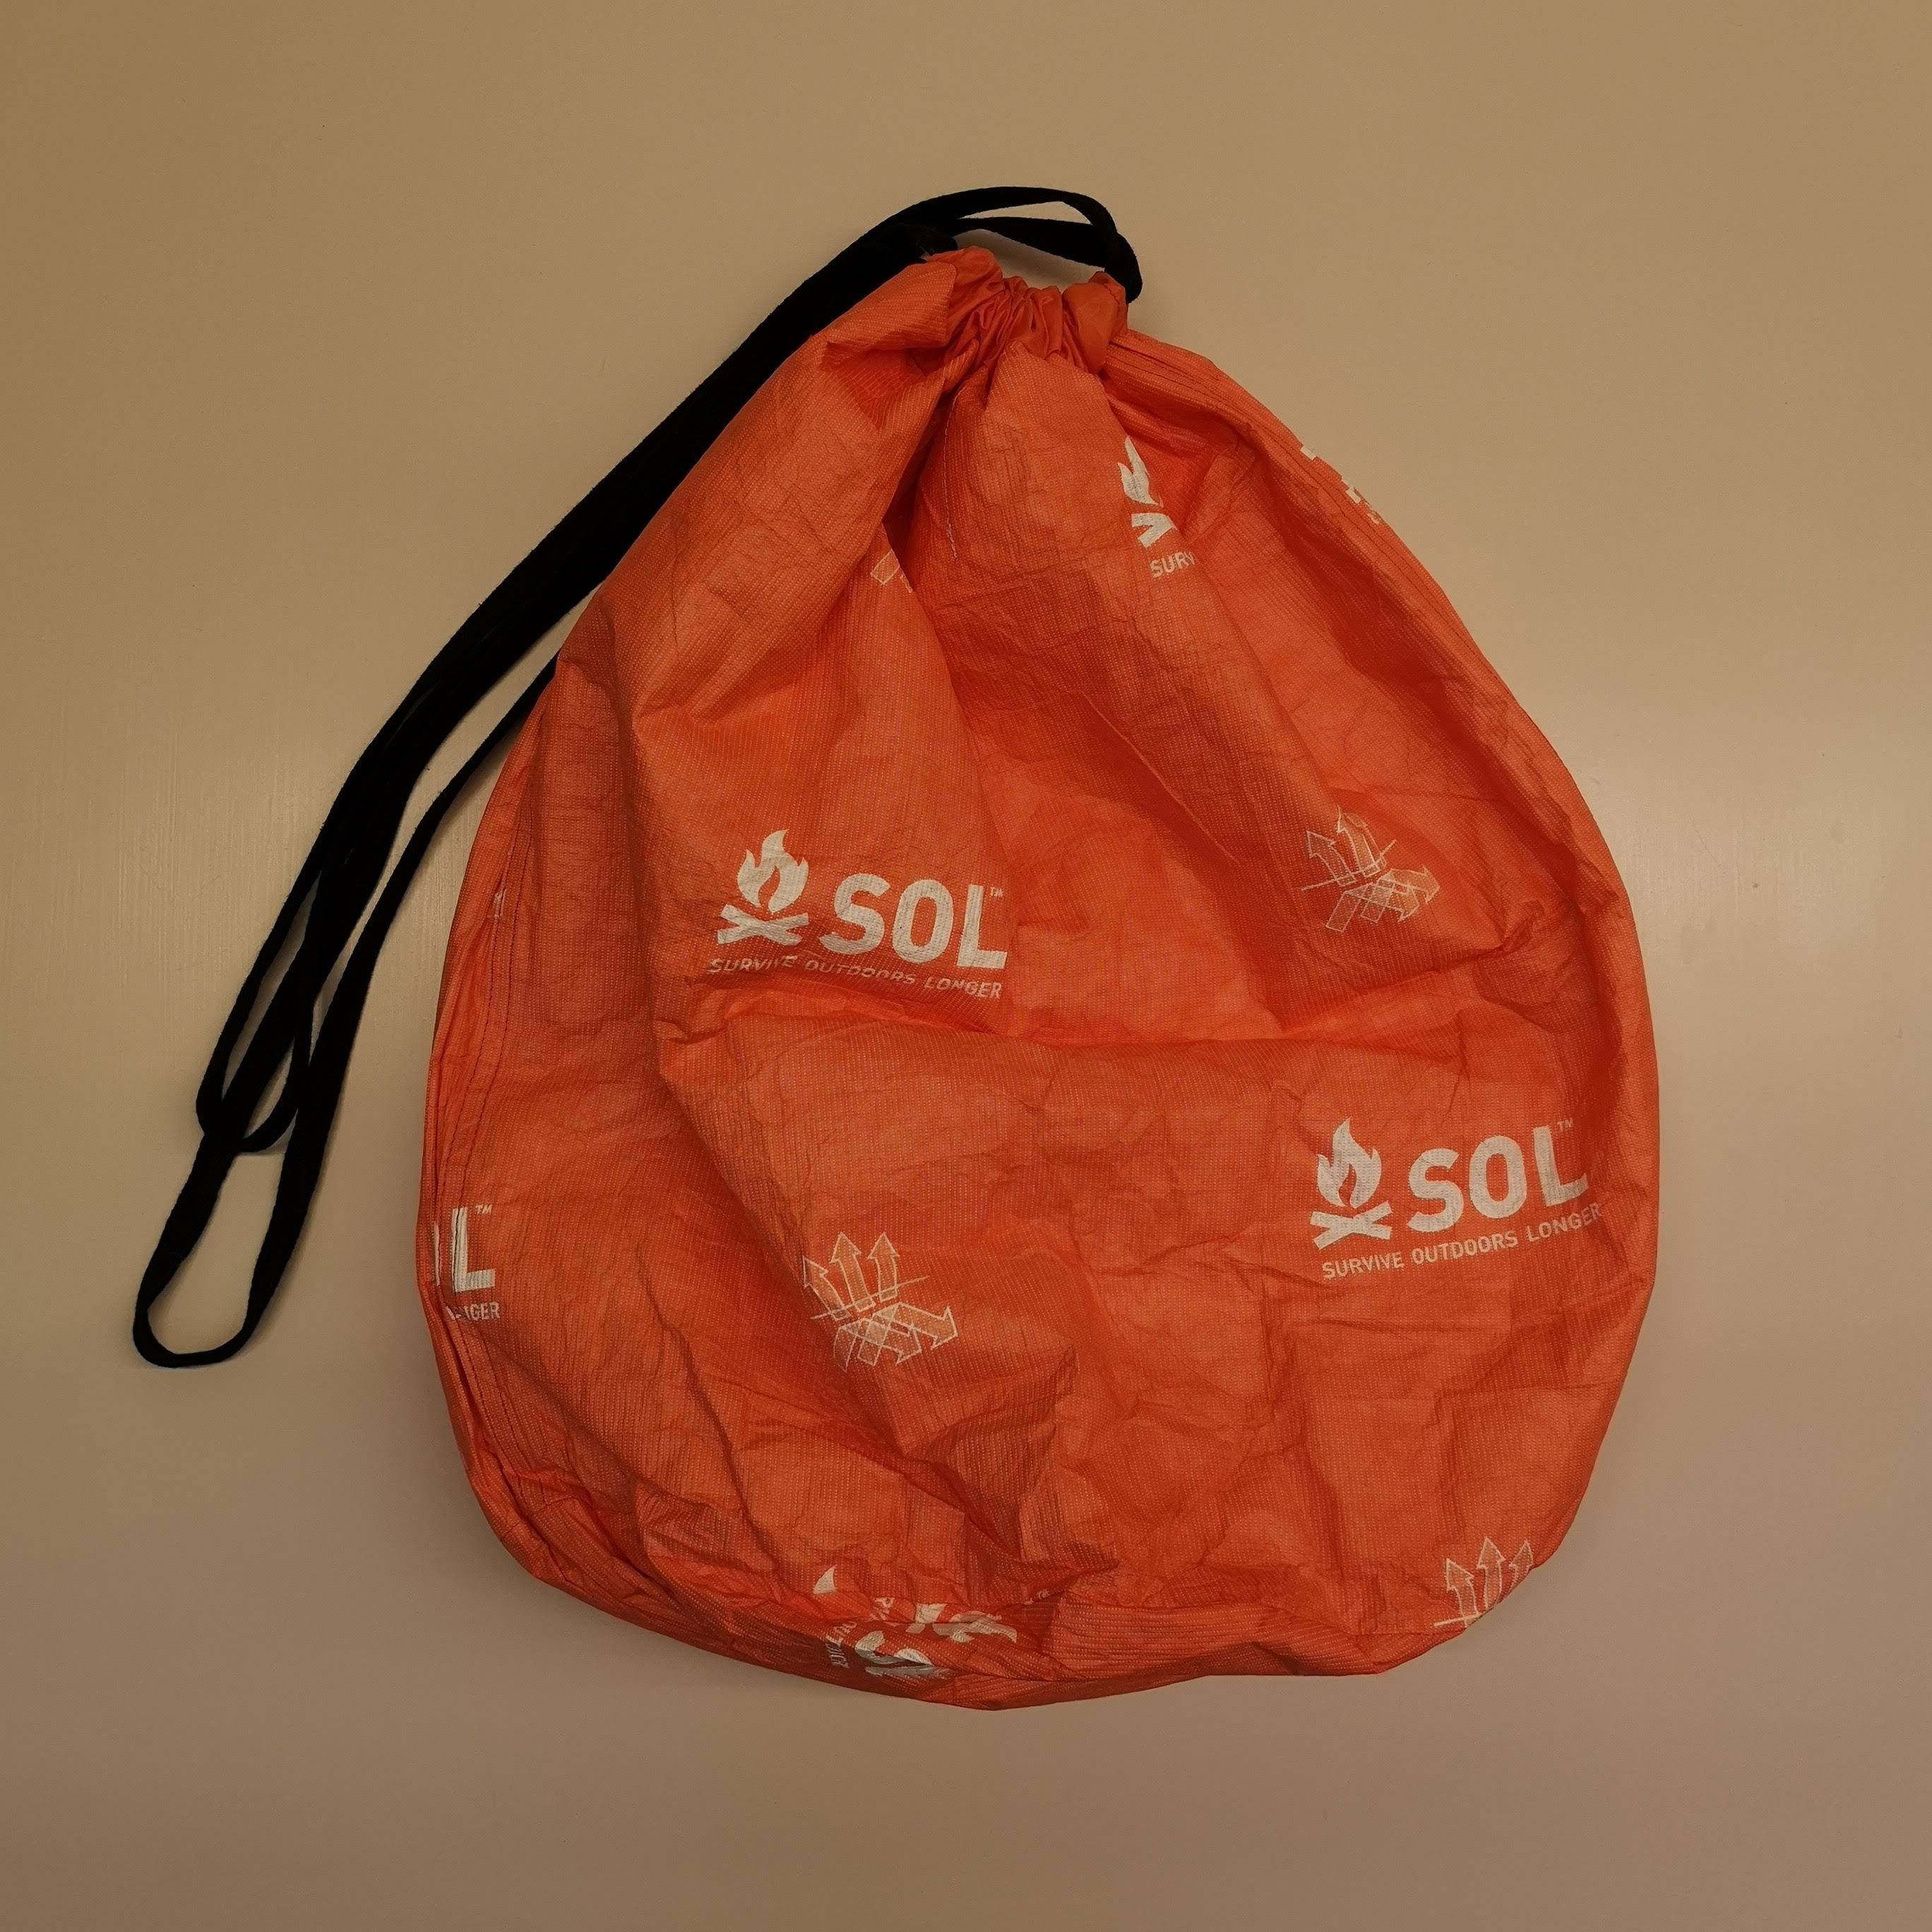 sa.0087AW18 : personal effects bag.-L-